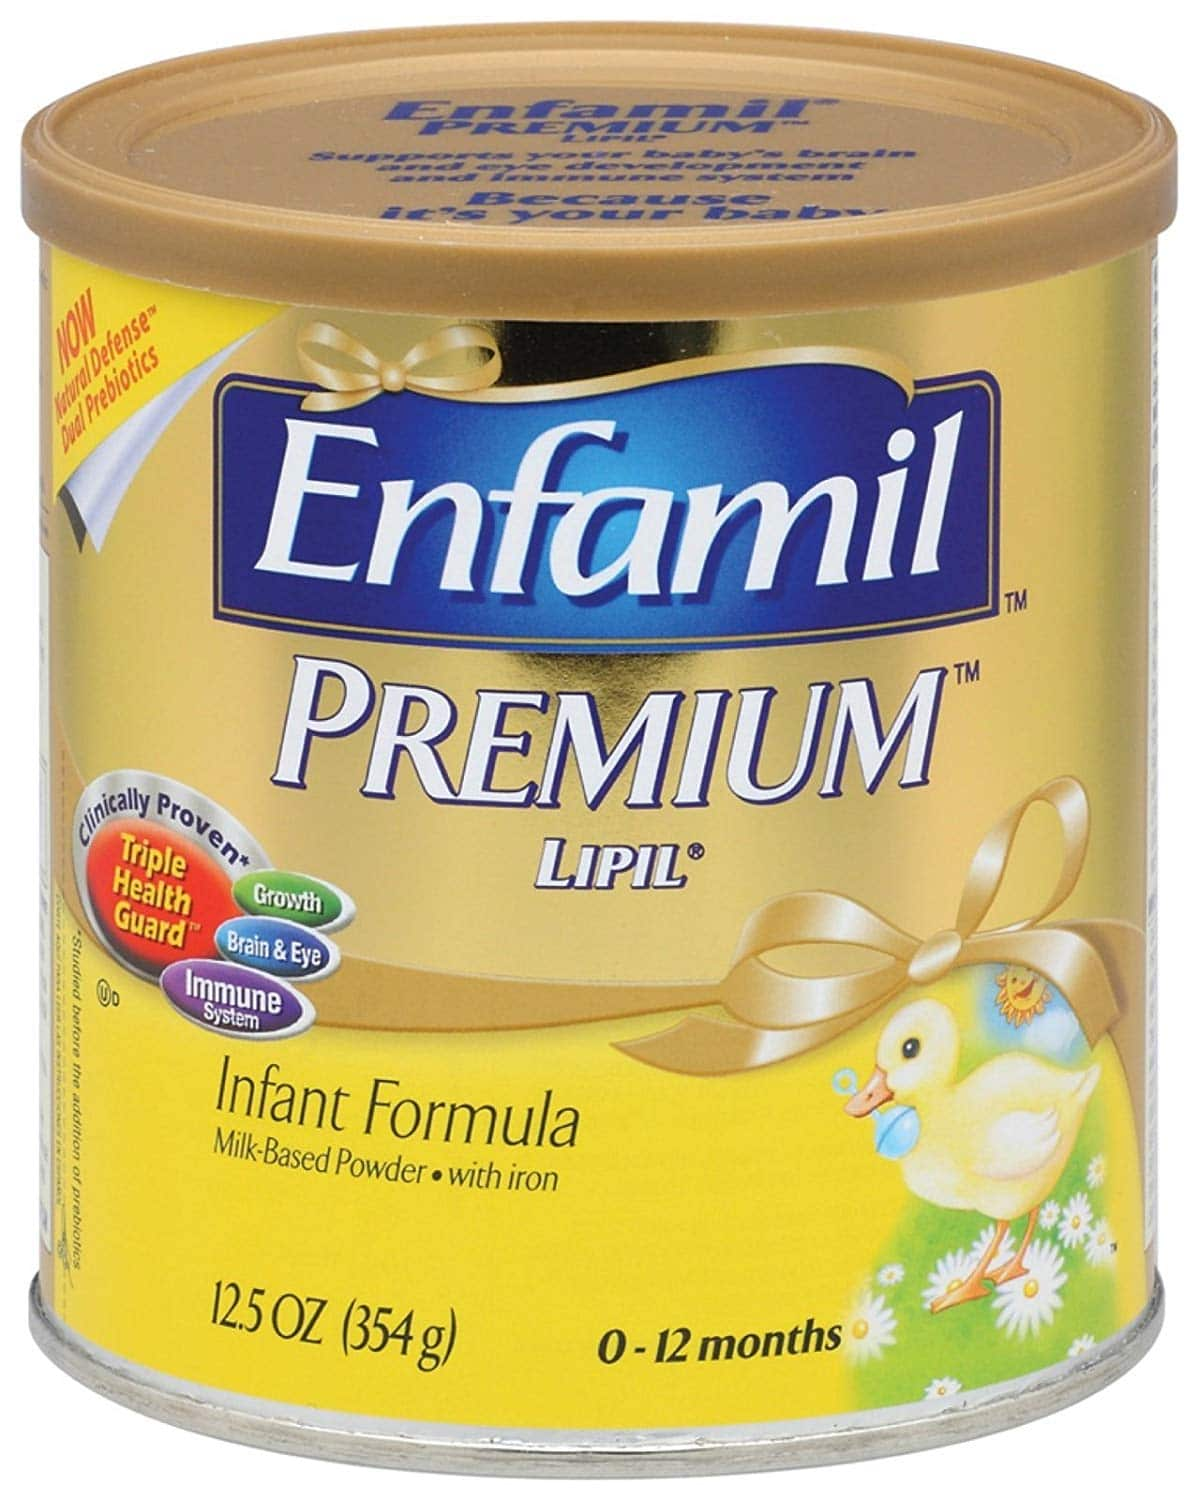 Enfamil Infant Formula Premium Lipil Milk-Based Powder